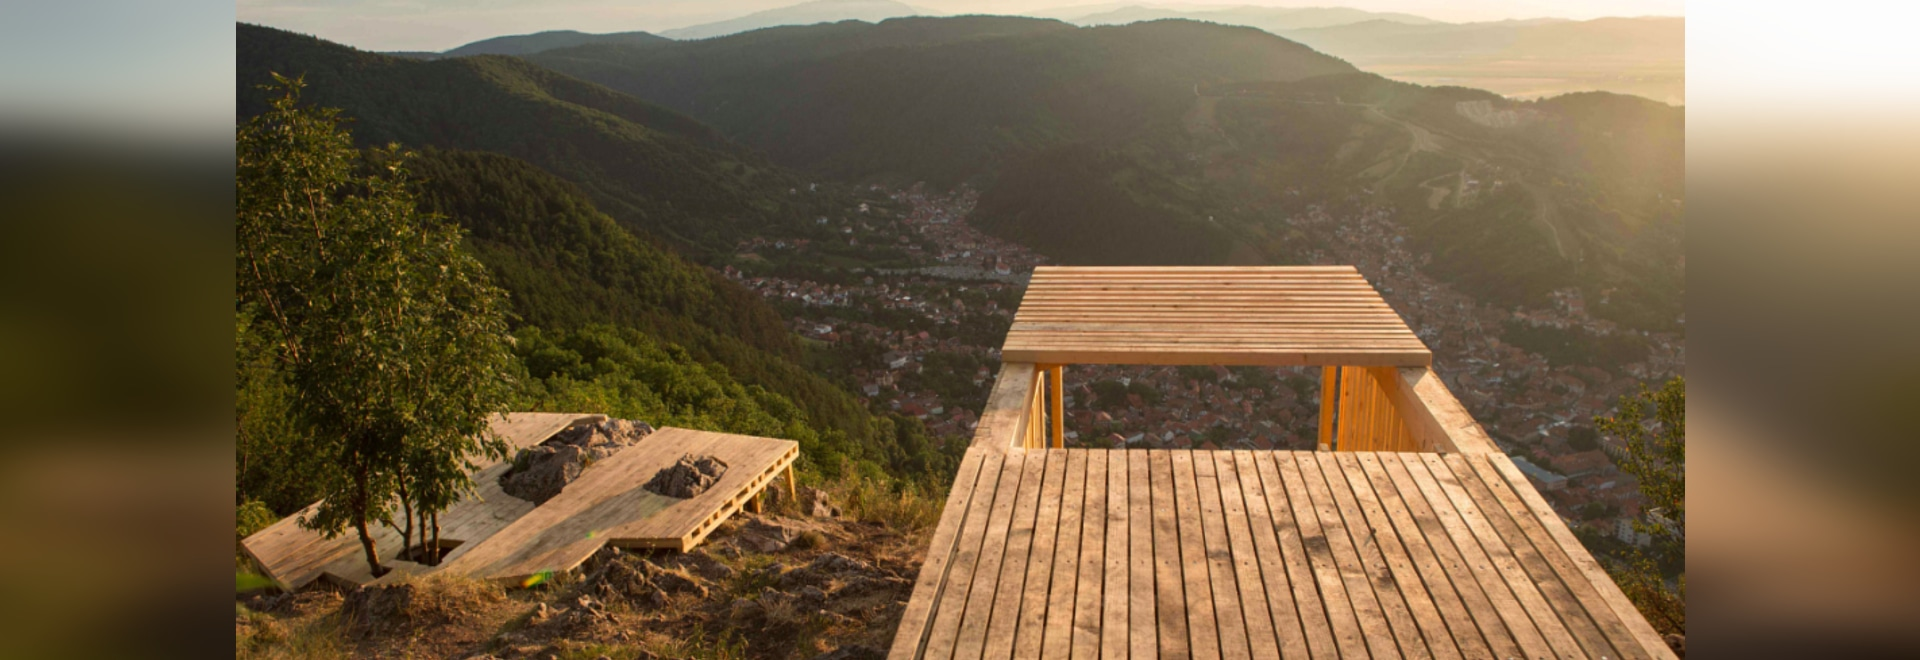 camposaz's wooden landing encourages rest and reflection in romania